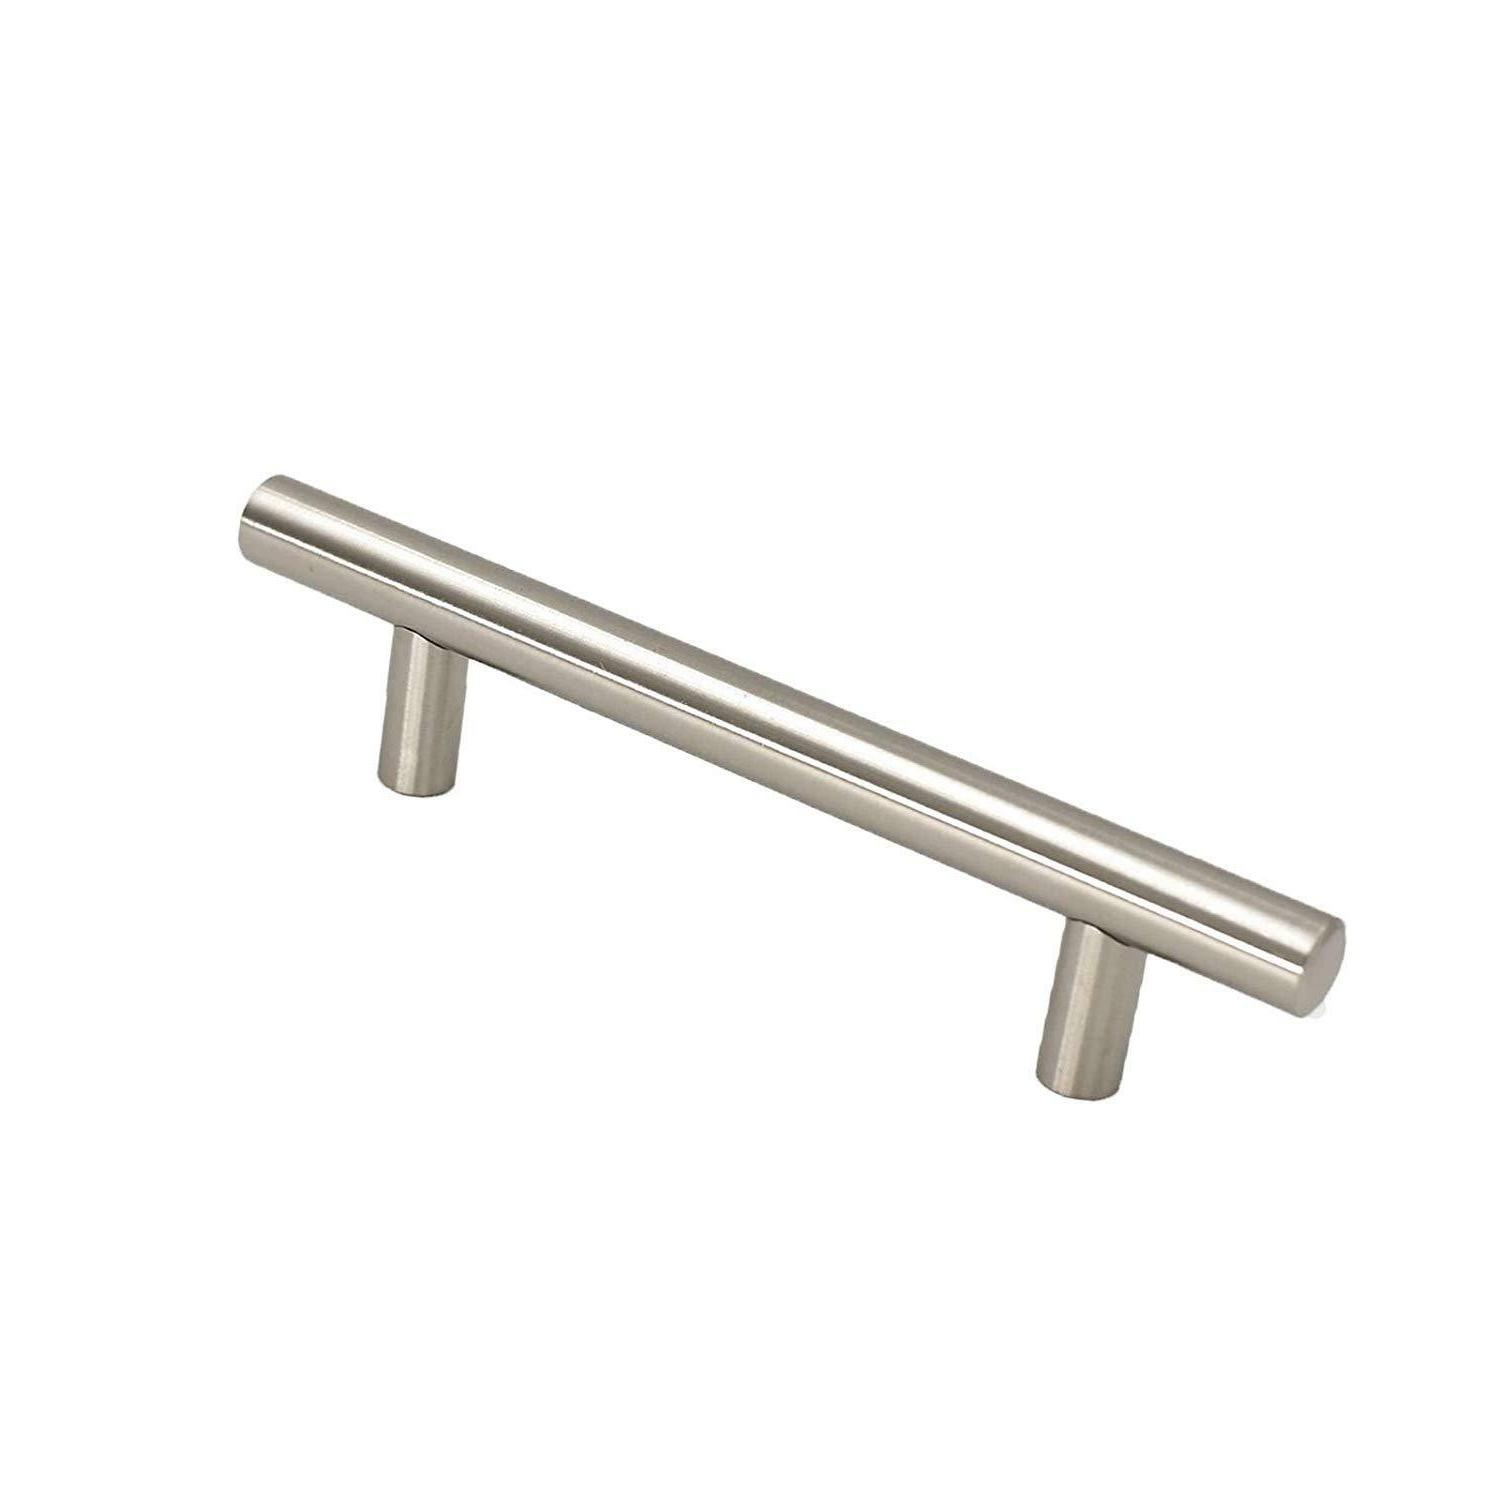 3 inch Cabinet Handles Brushed Nickel Cabinet Pulls Bathroom